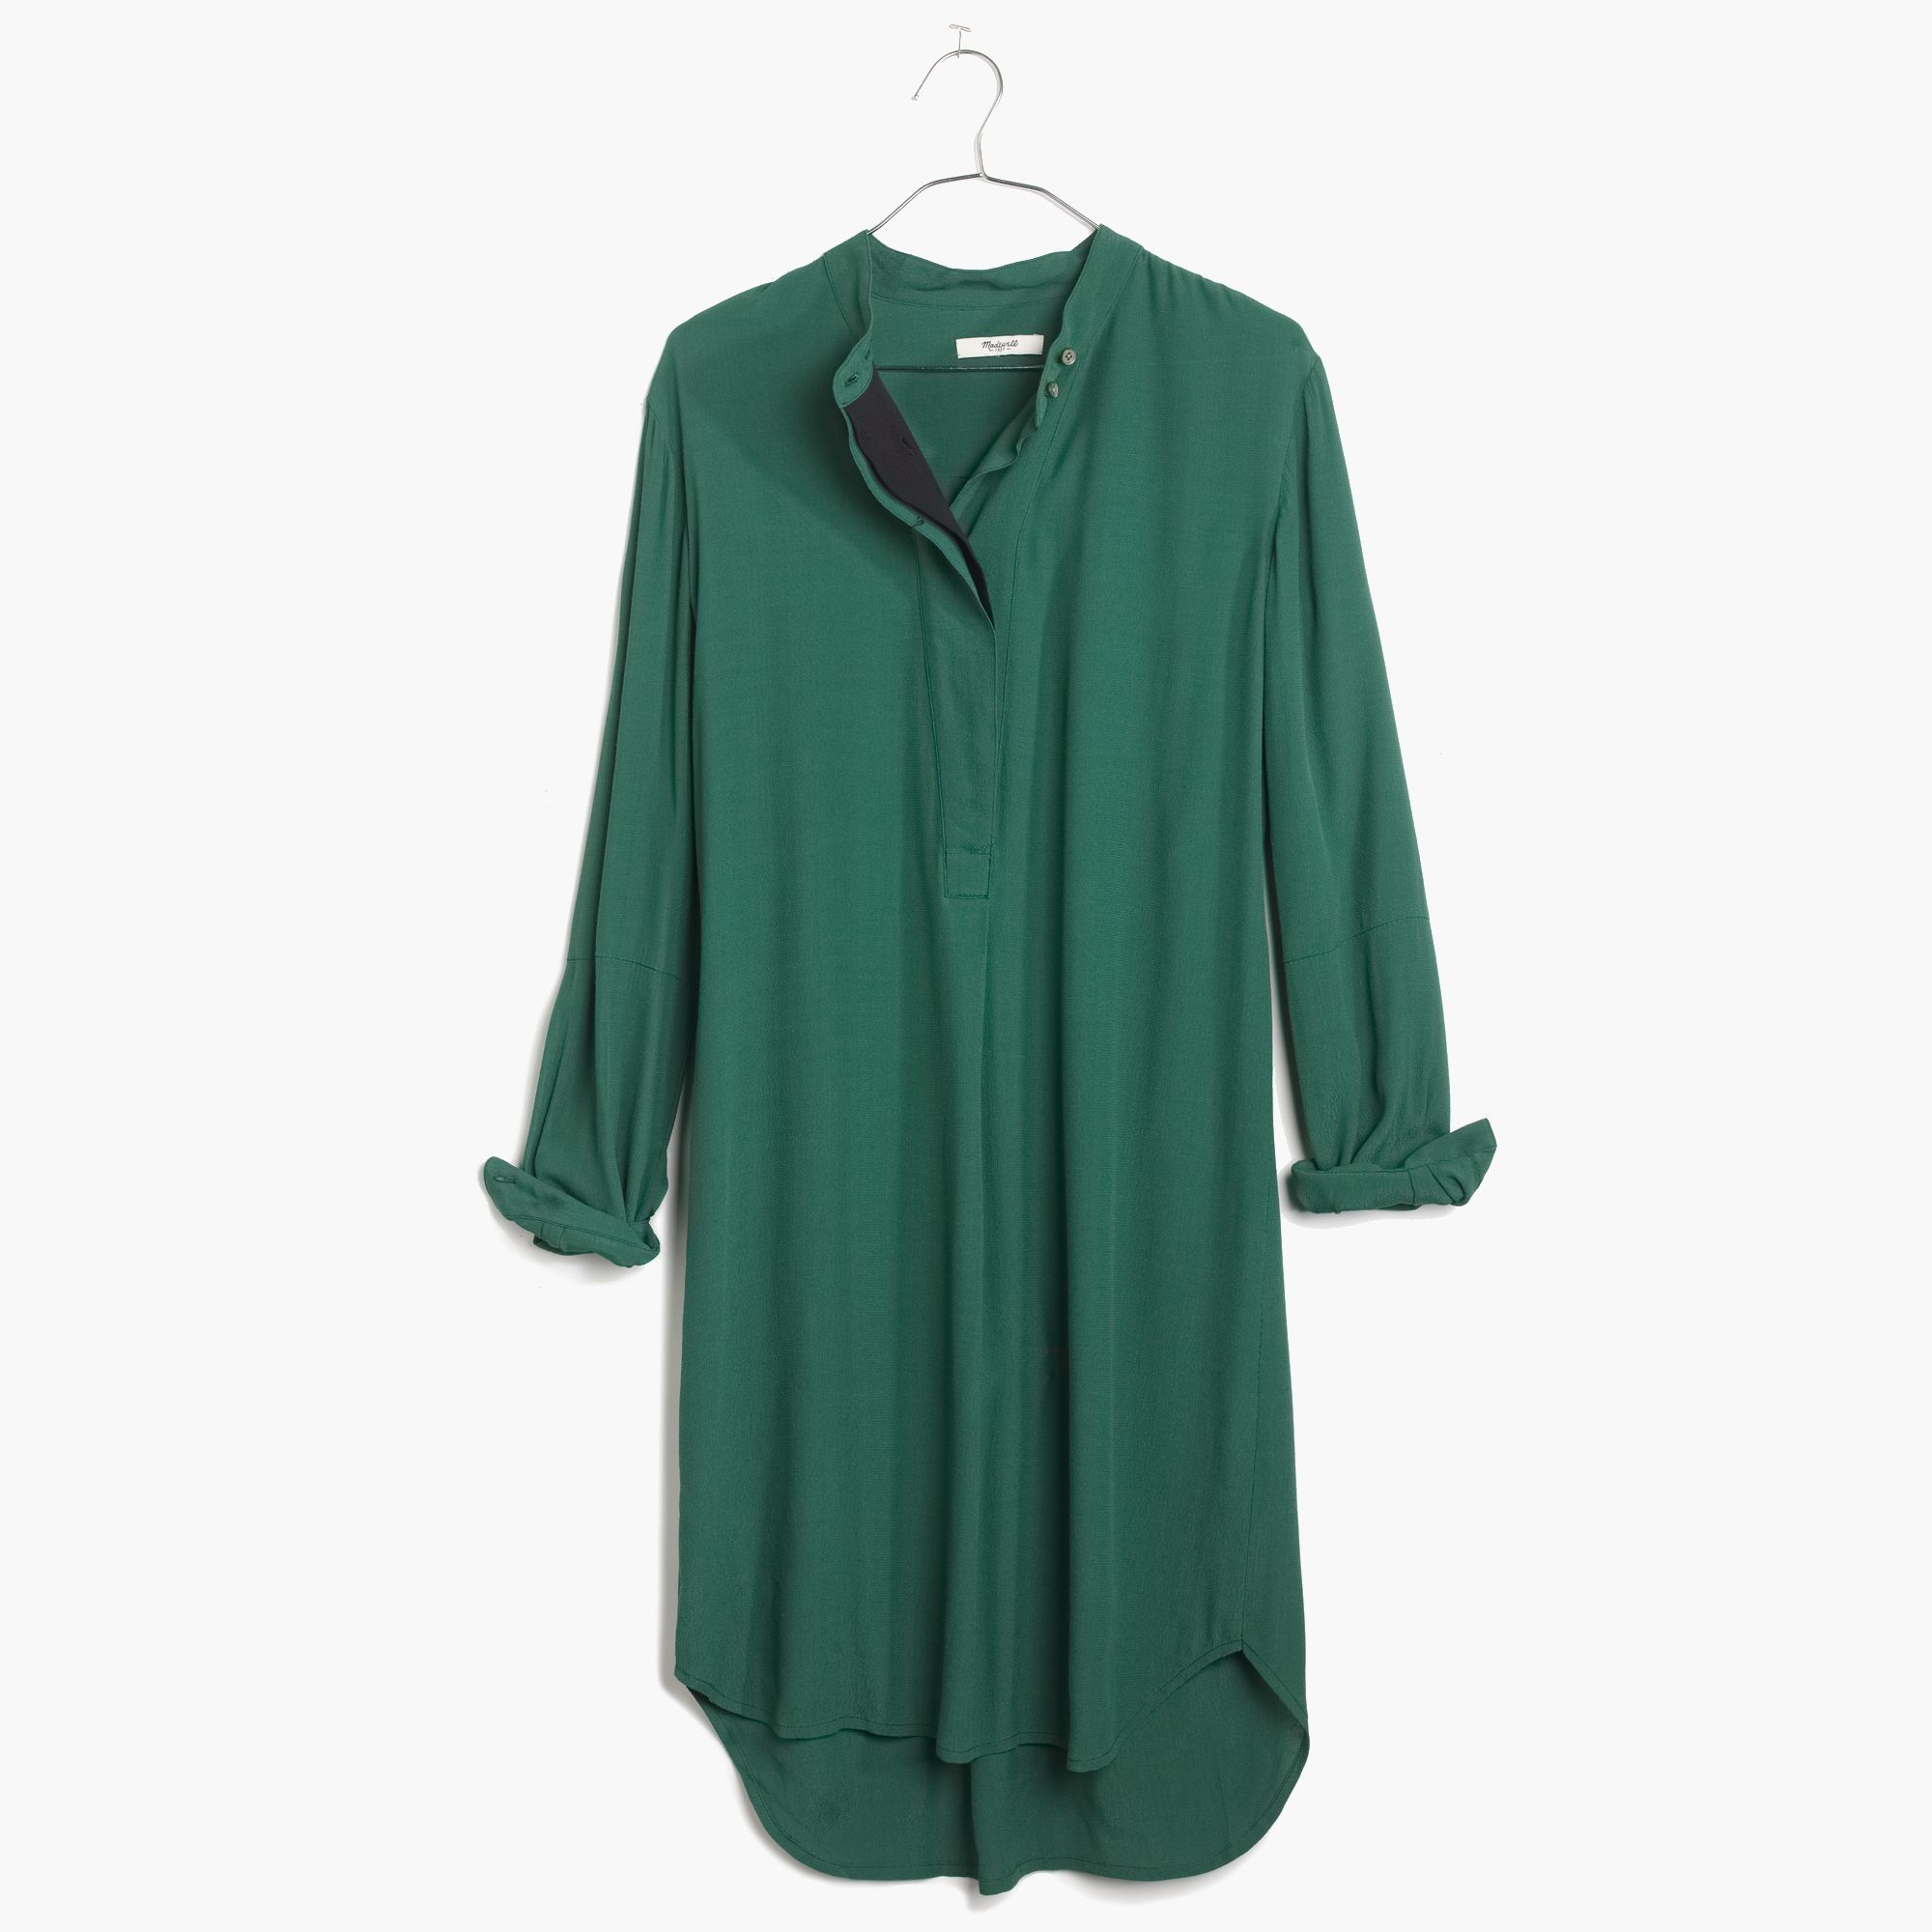 925309f9fed Madewell Long-Sleeve Tunic Dress in Green - Lyst